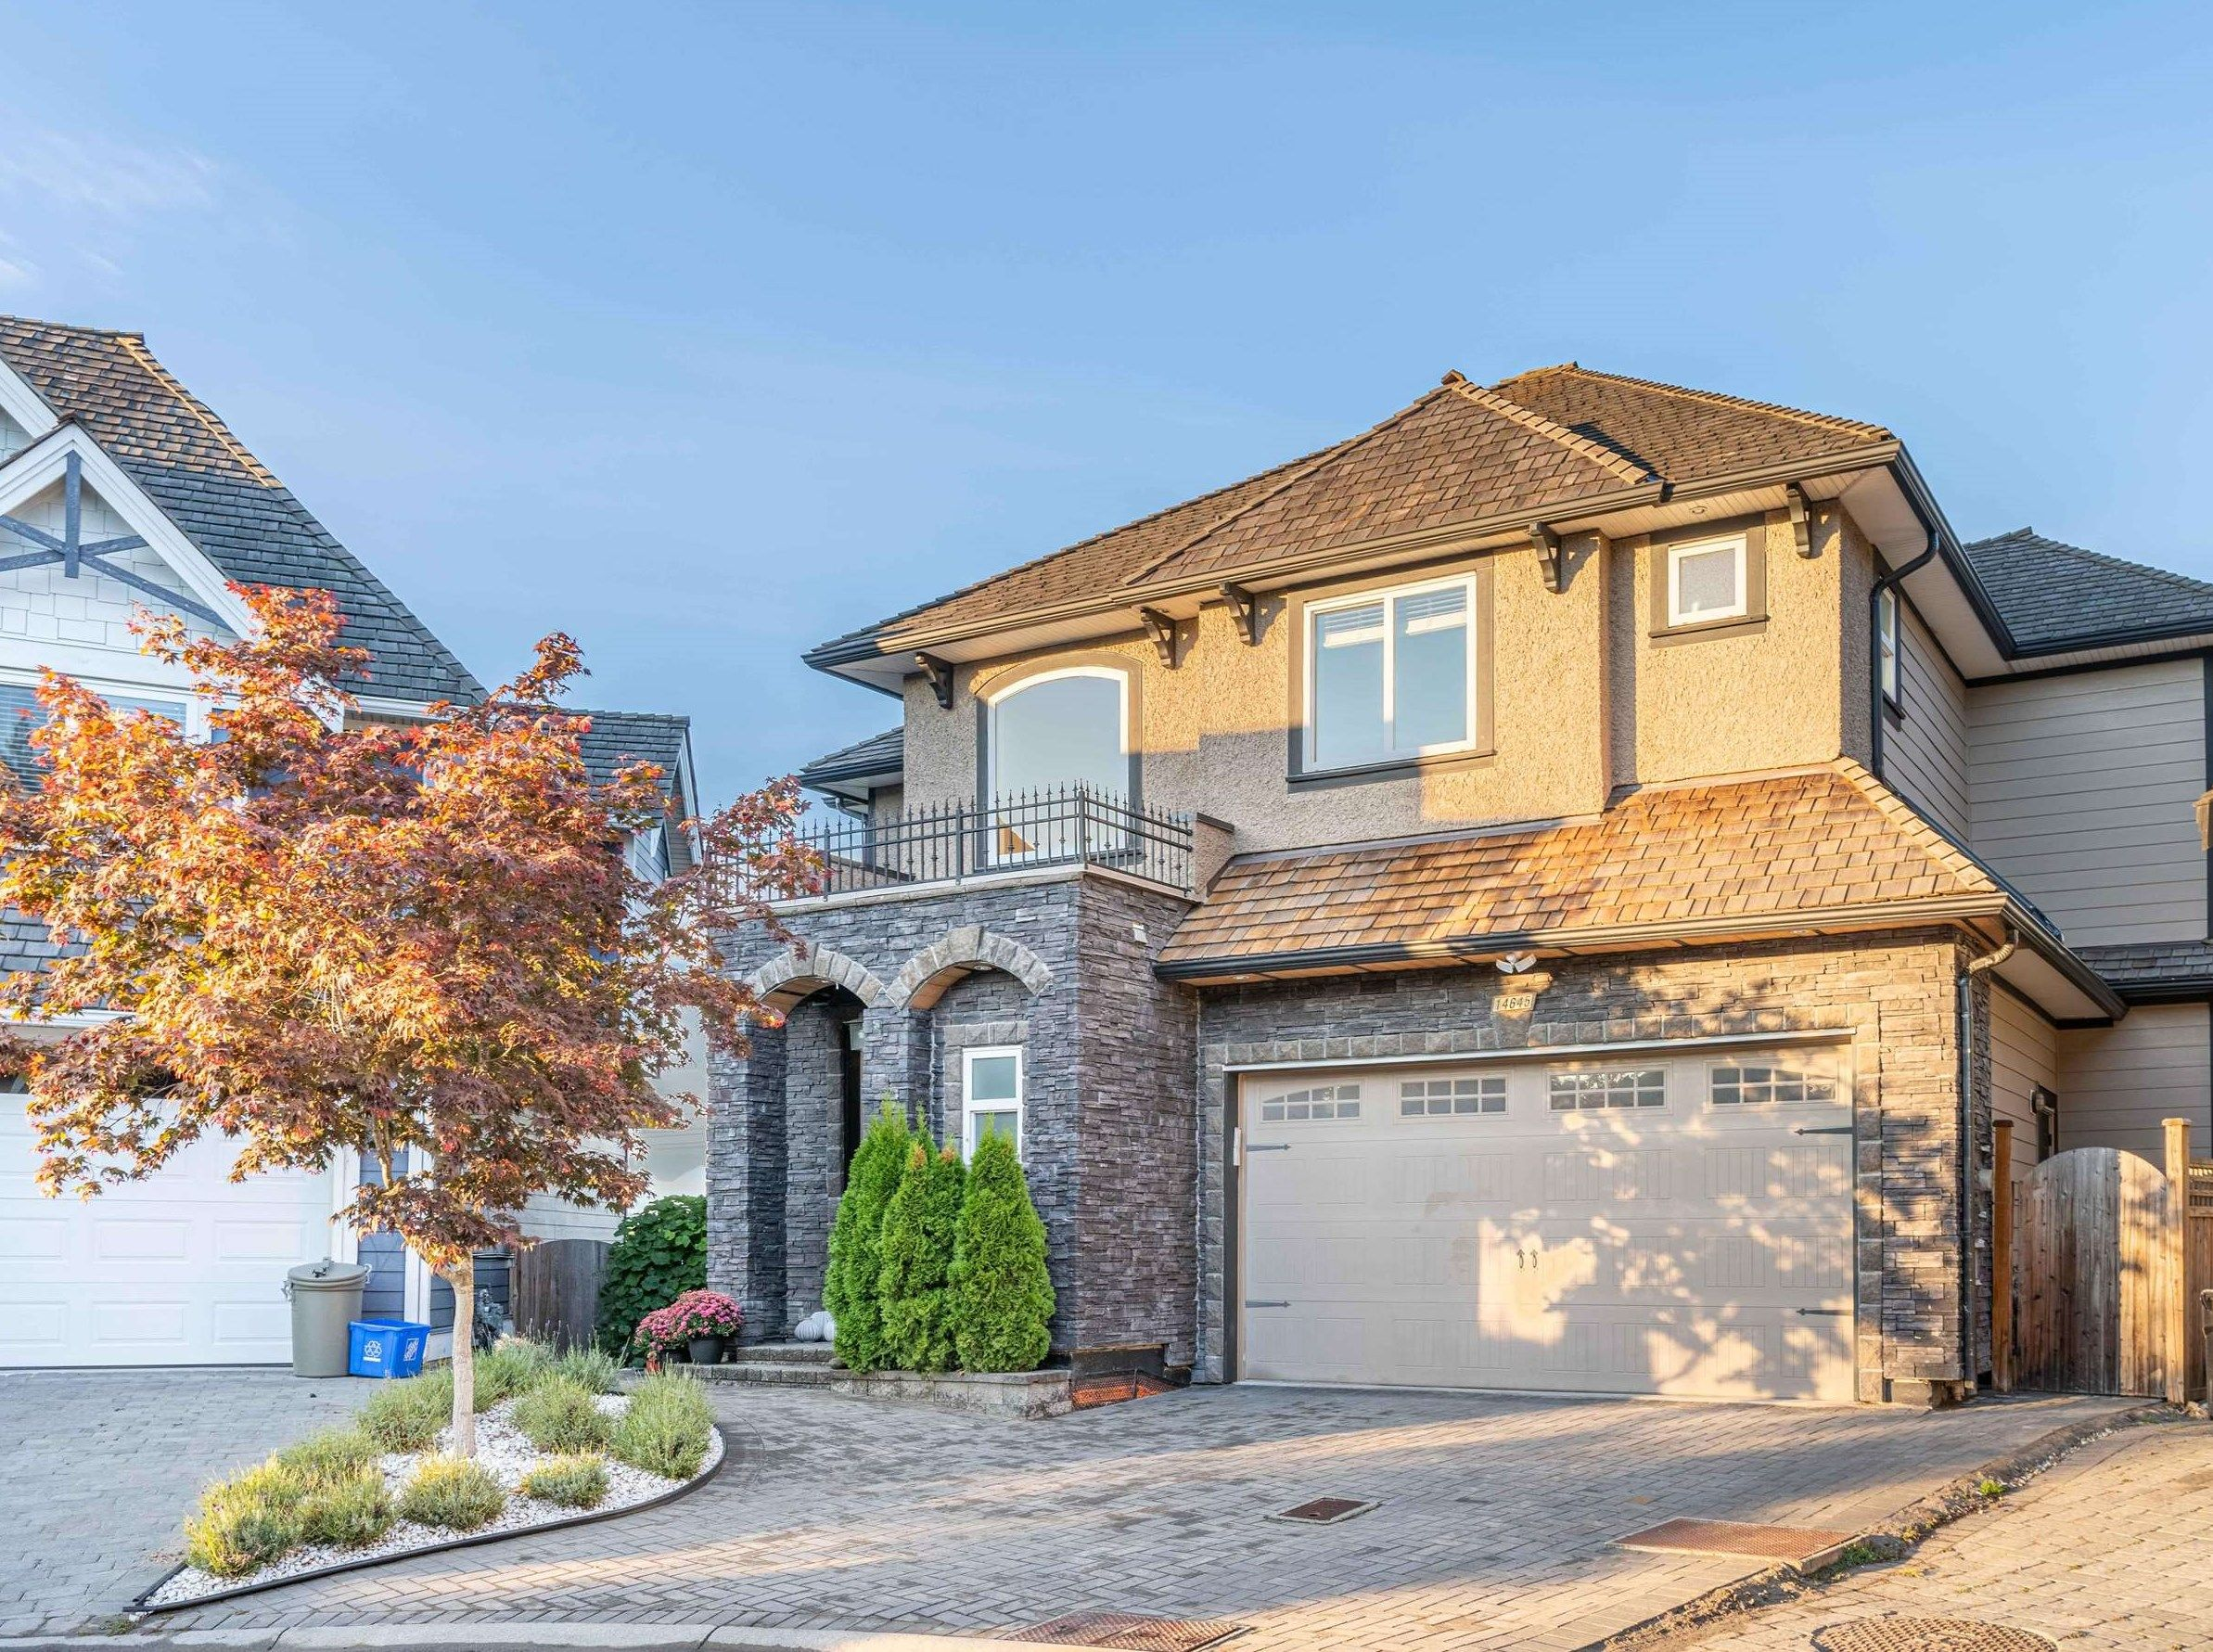 """Main Photo: 14645 36B Avenue in Surrey: King George Corridor House for sale in """"ANDERSON WALK"""" (South Surrey White Rock)  : MLS®# R2612984"""